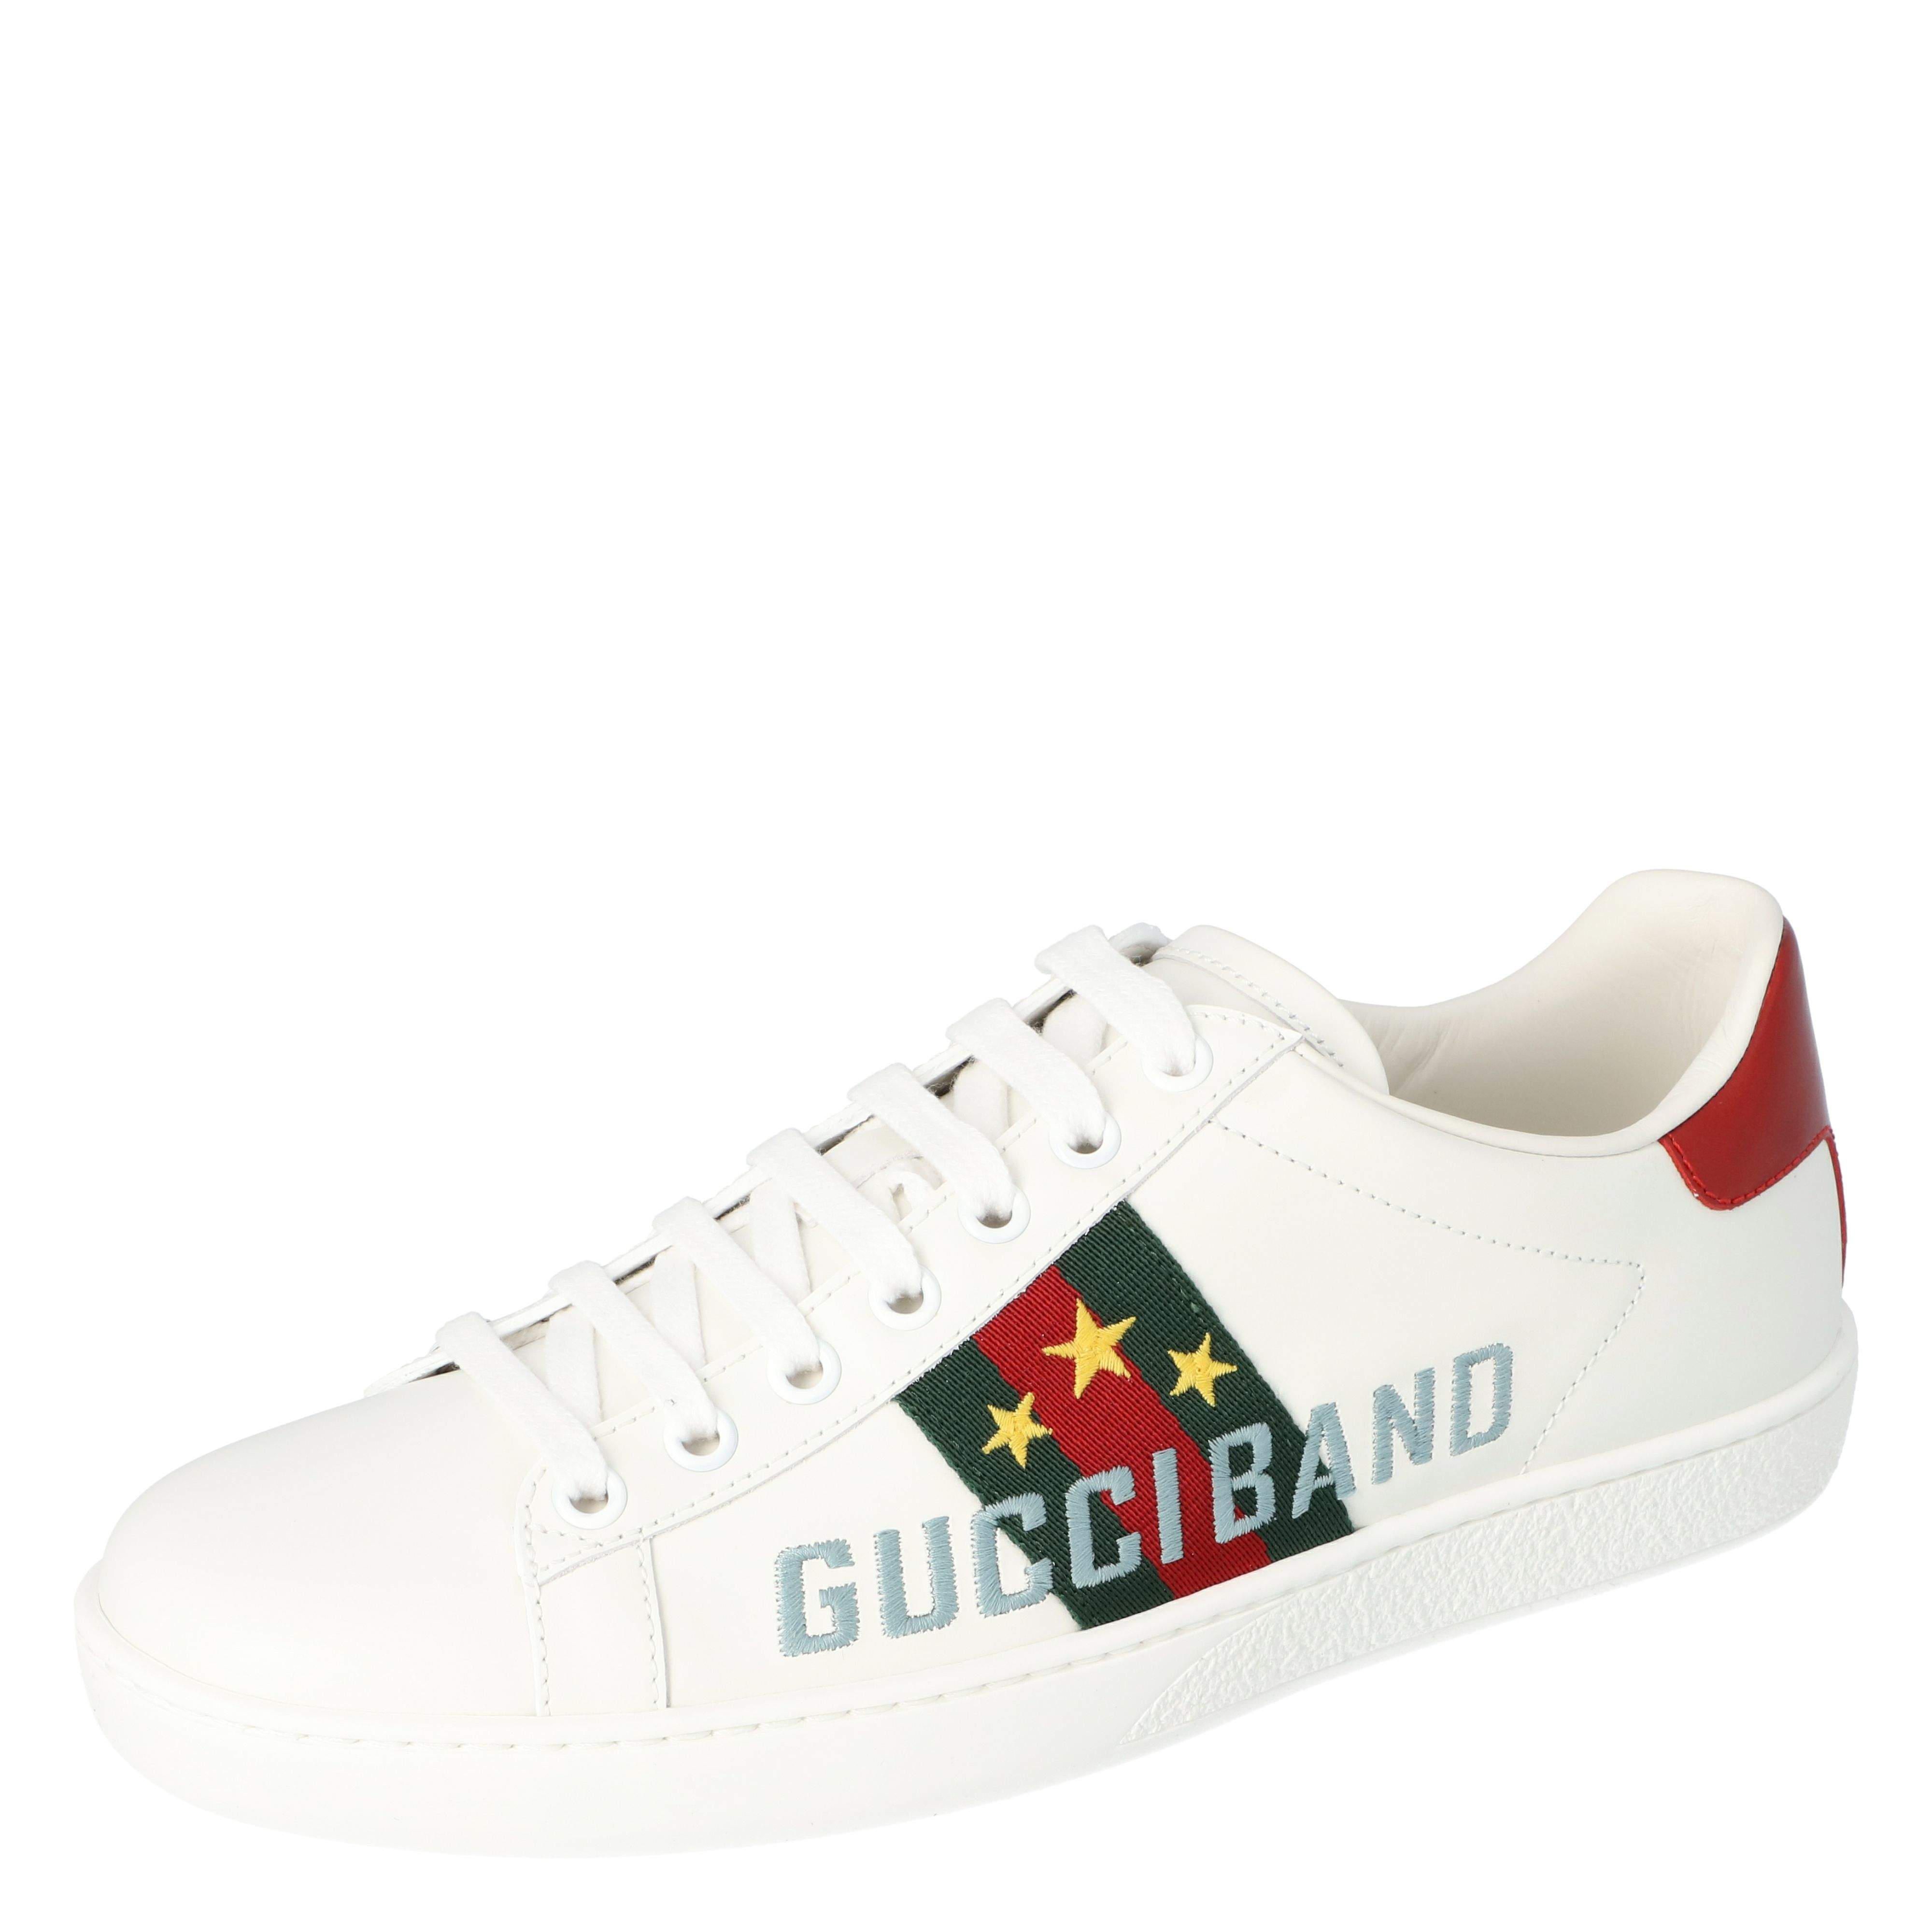 Gucci White Leather Gucci Band Embroidery Ace Low-Top Sneakers Size 40